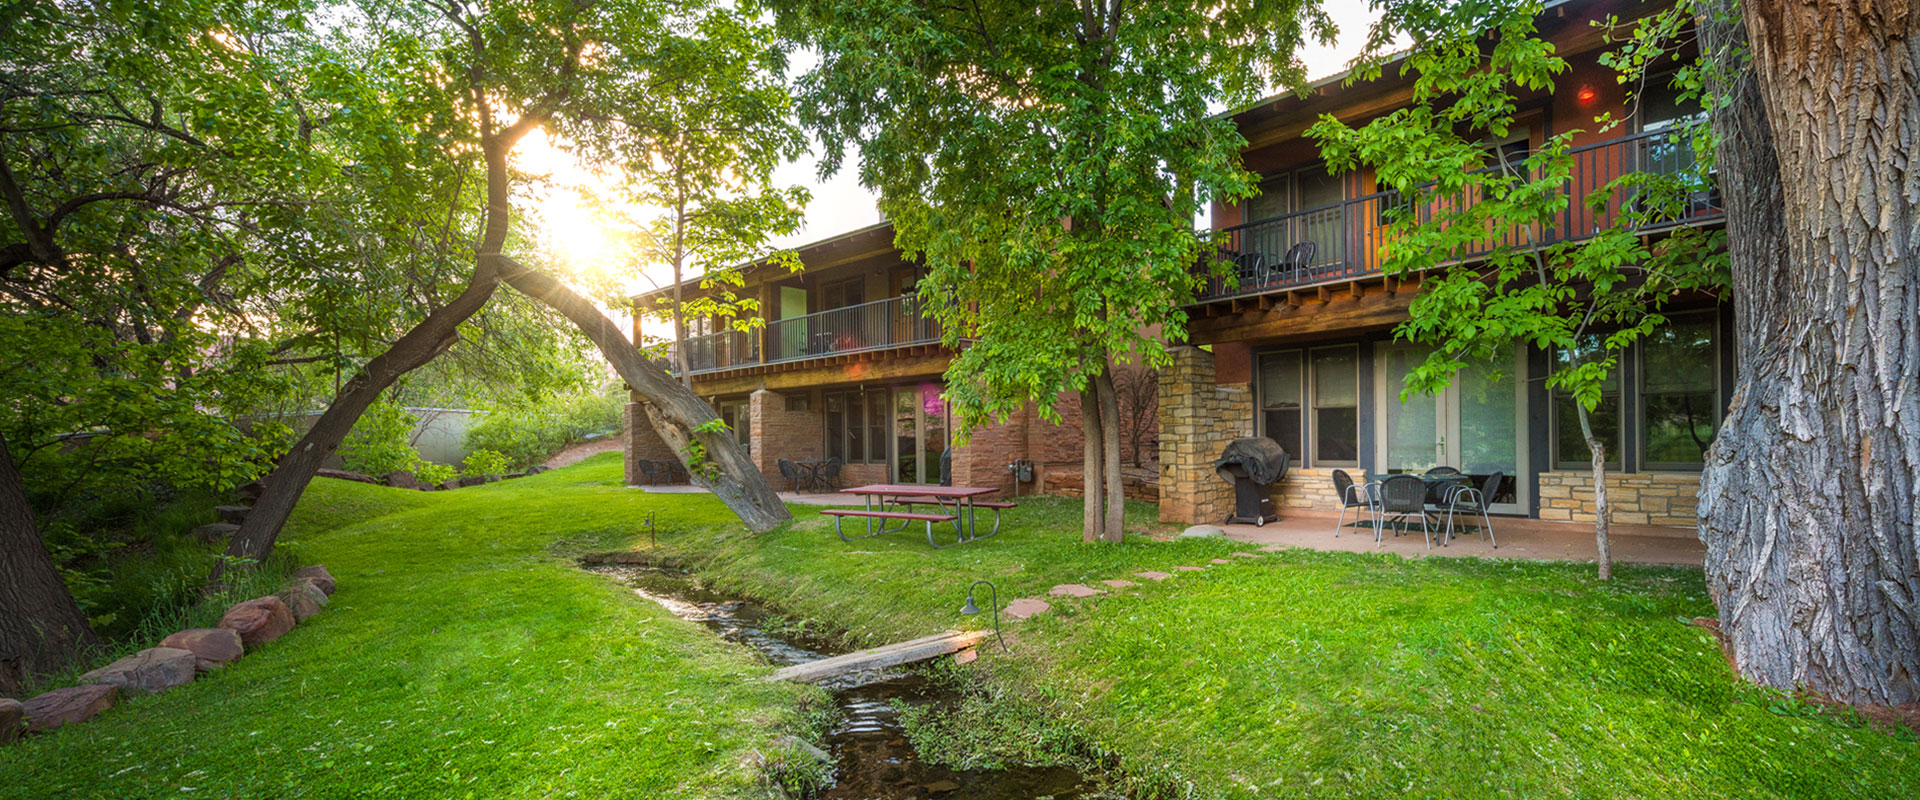 A man-made stream runs by lounge chairs, picnic tables, hammocks and tall cottonwood trees in the green parkspace at Moab Springs Ranch in Utah.